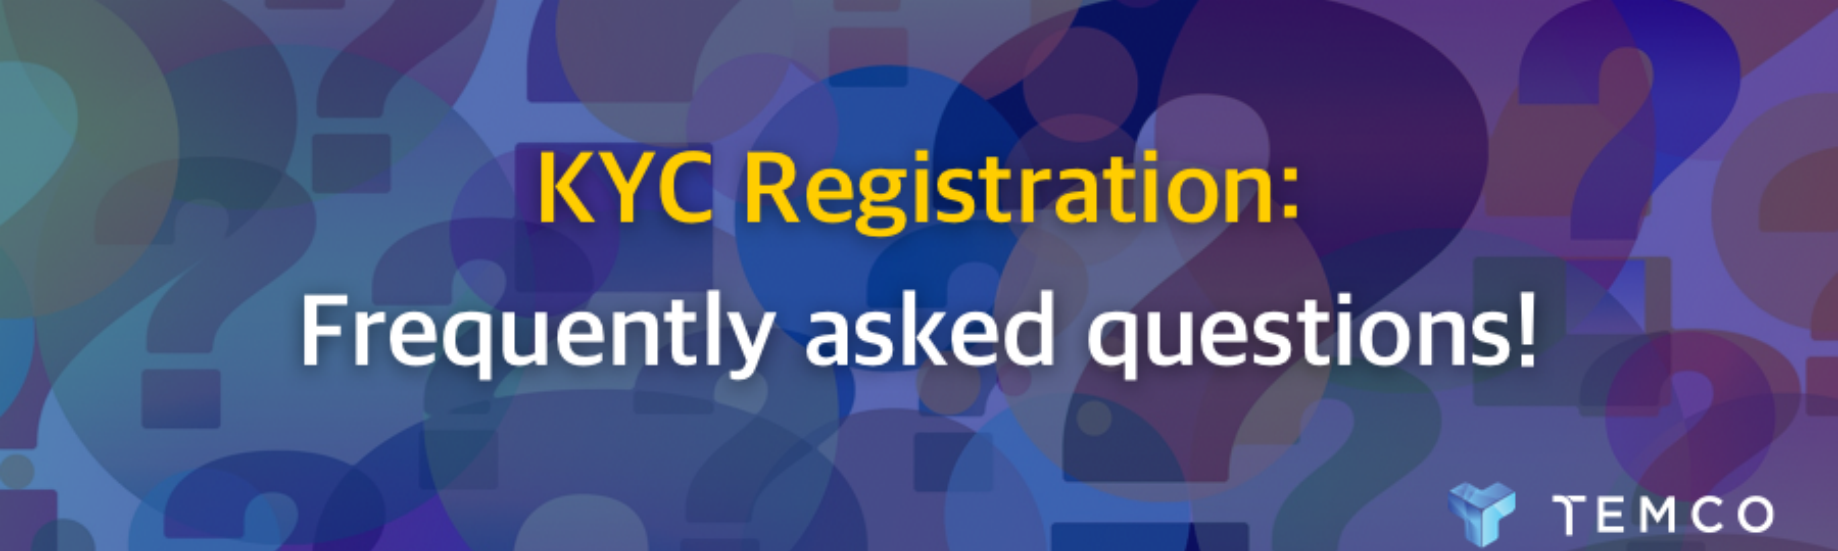 KYC Registration: Frequently asked questions! - TEMCO - Medium